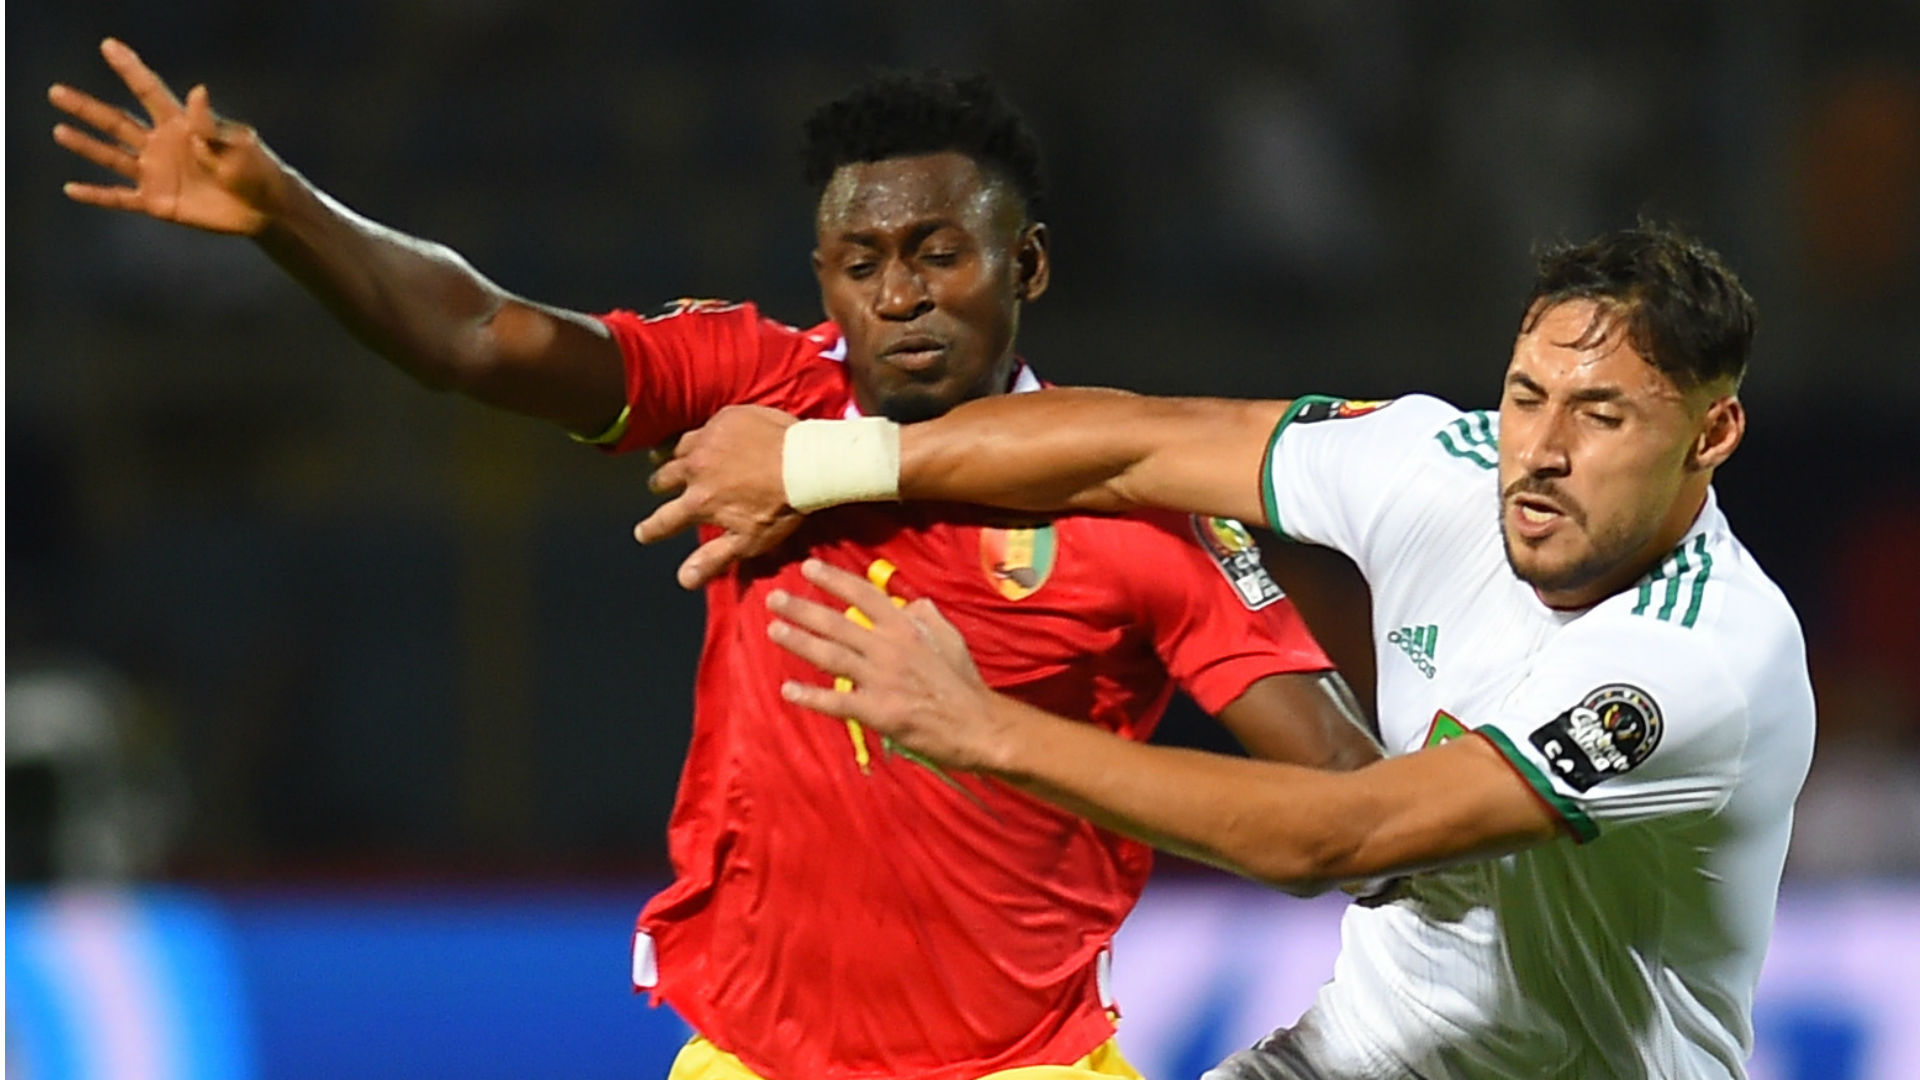 Cheikhou Kouyate, Yassine Meriah & the top 10 passers in Afcon 2019